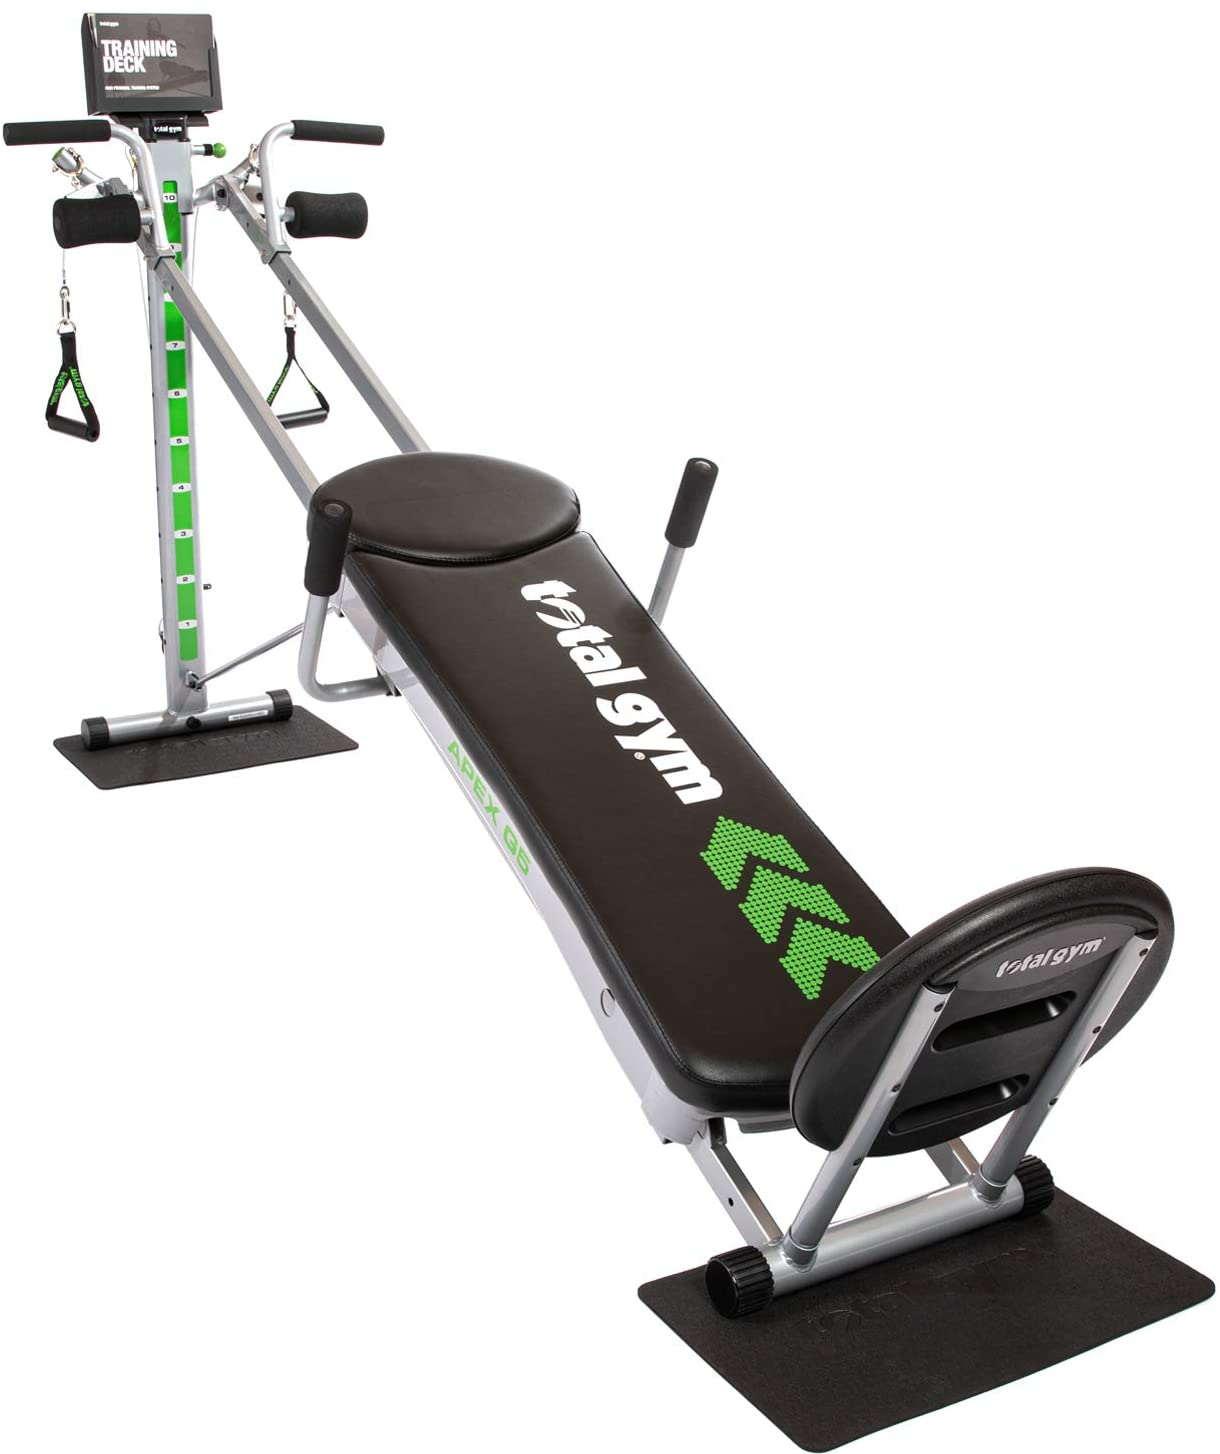 Review of Total Gym APEX Versatile Indoor Home Workout Equipment